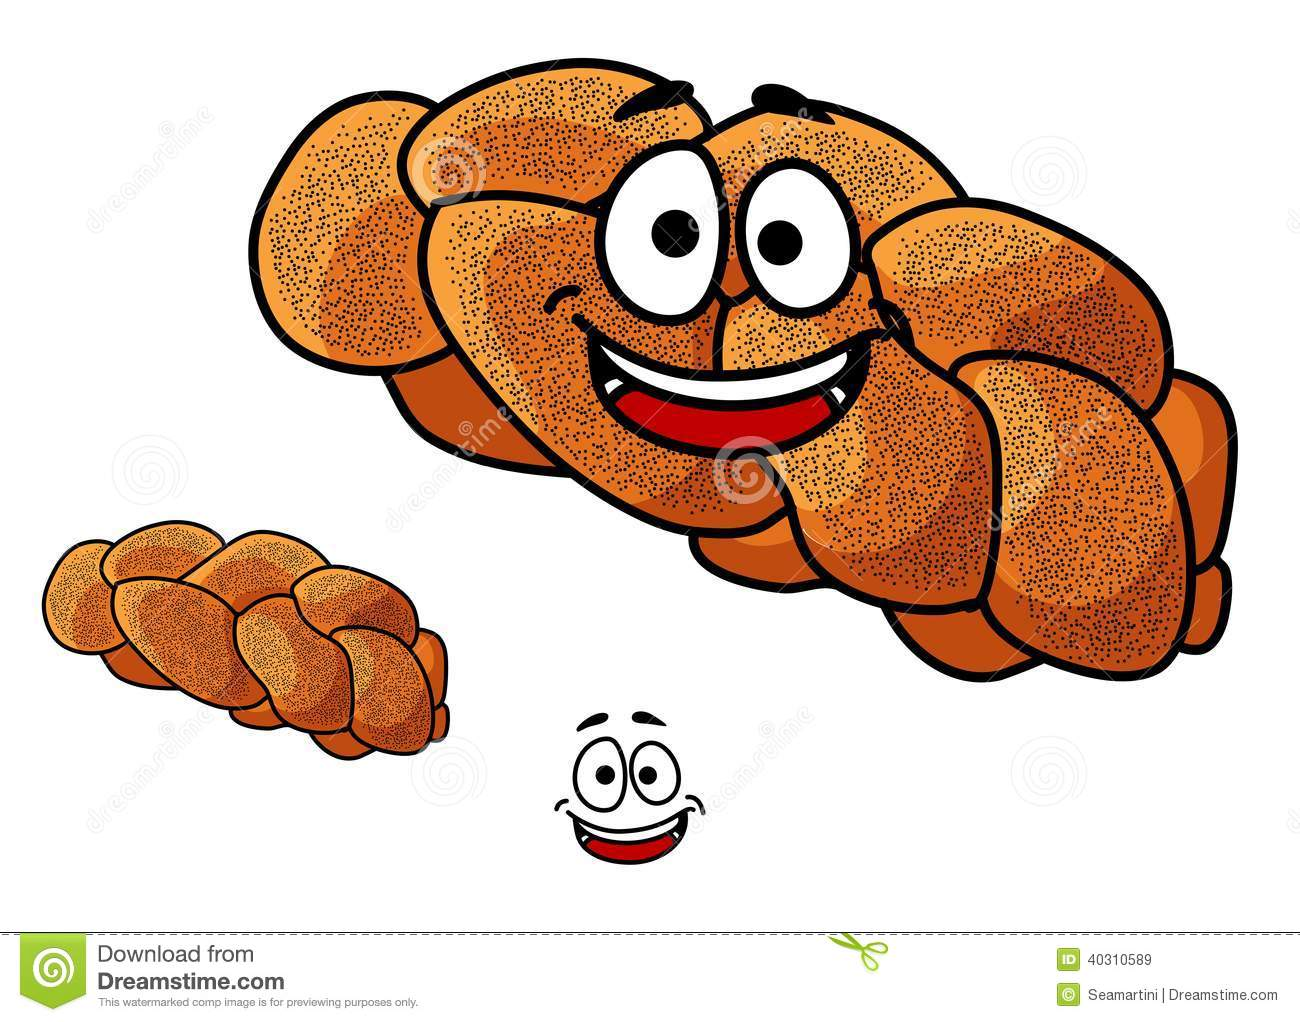 Cant Get Enoughof That Golden Crisp as well 394768723560116660 besides Royalty Free Stock Image Cartoon Bread Icon Image18488506 also Burger Cuteness Pusheen On A Burger together with Grain Foods Making Fat Study Article 1. on wheat cartoon character